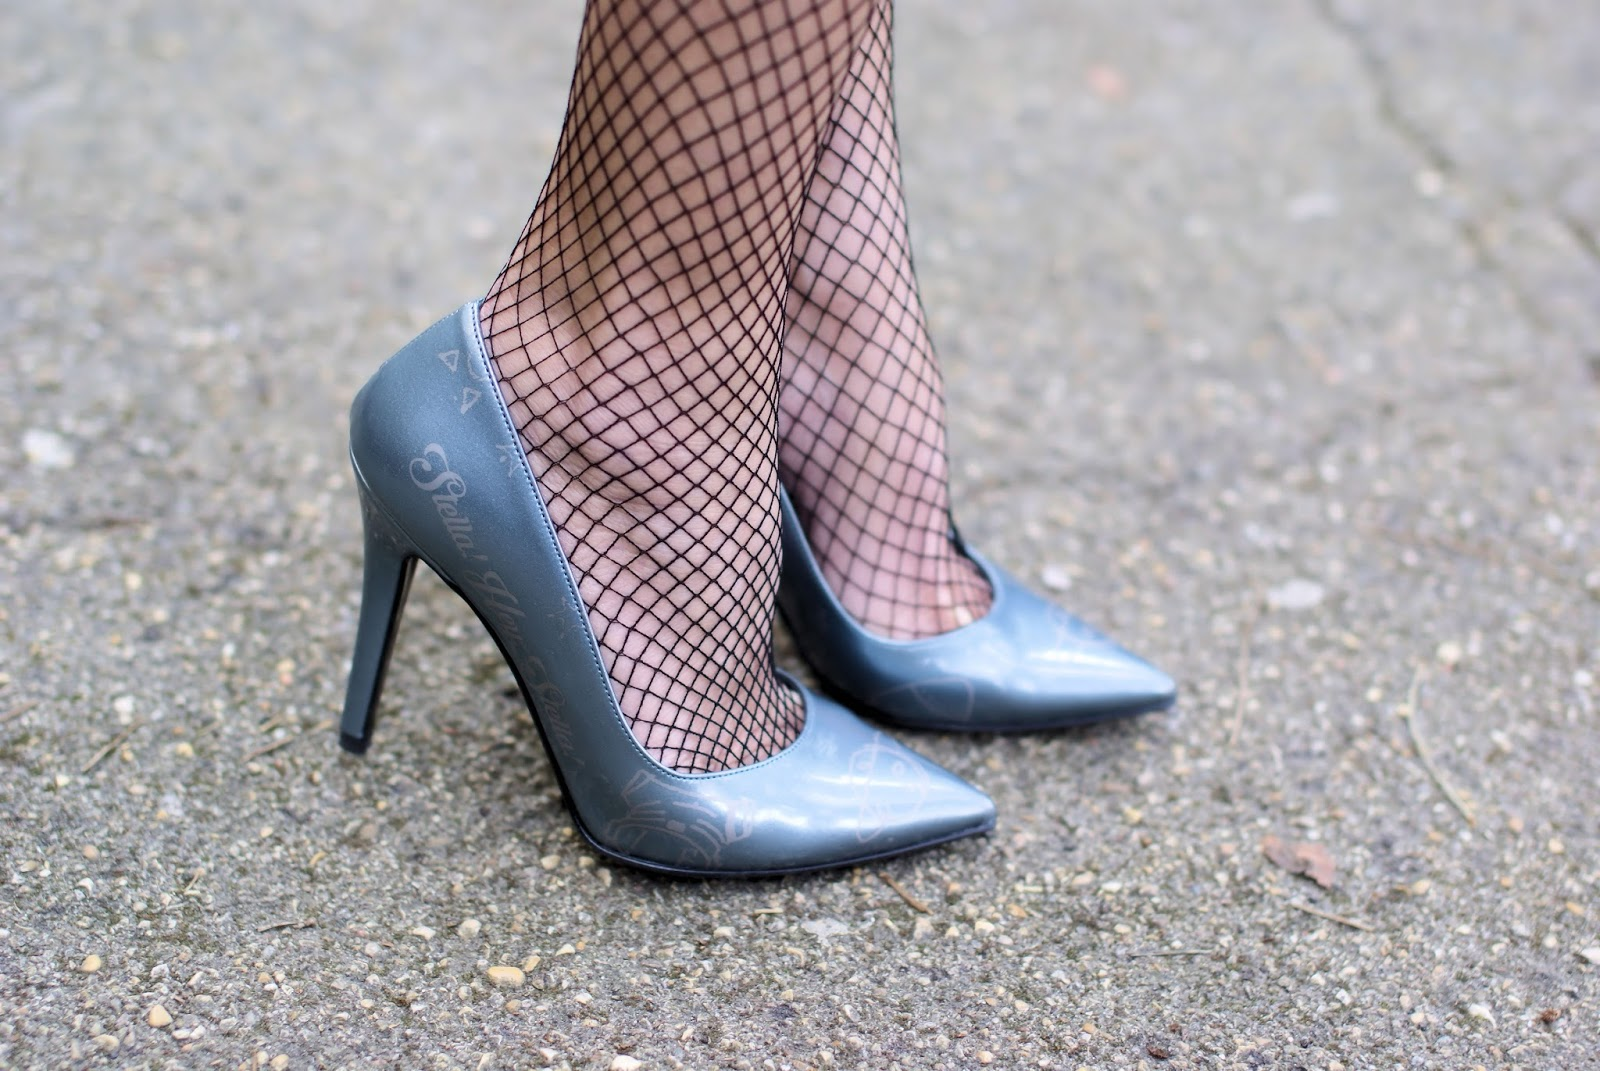 #StayMercury Denim Star Pumps by Angela Pavese for Vigevano Shoes on Fashion and Cookies fashion blog, fashion blogger